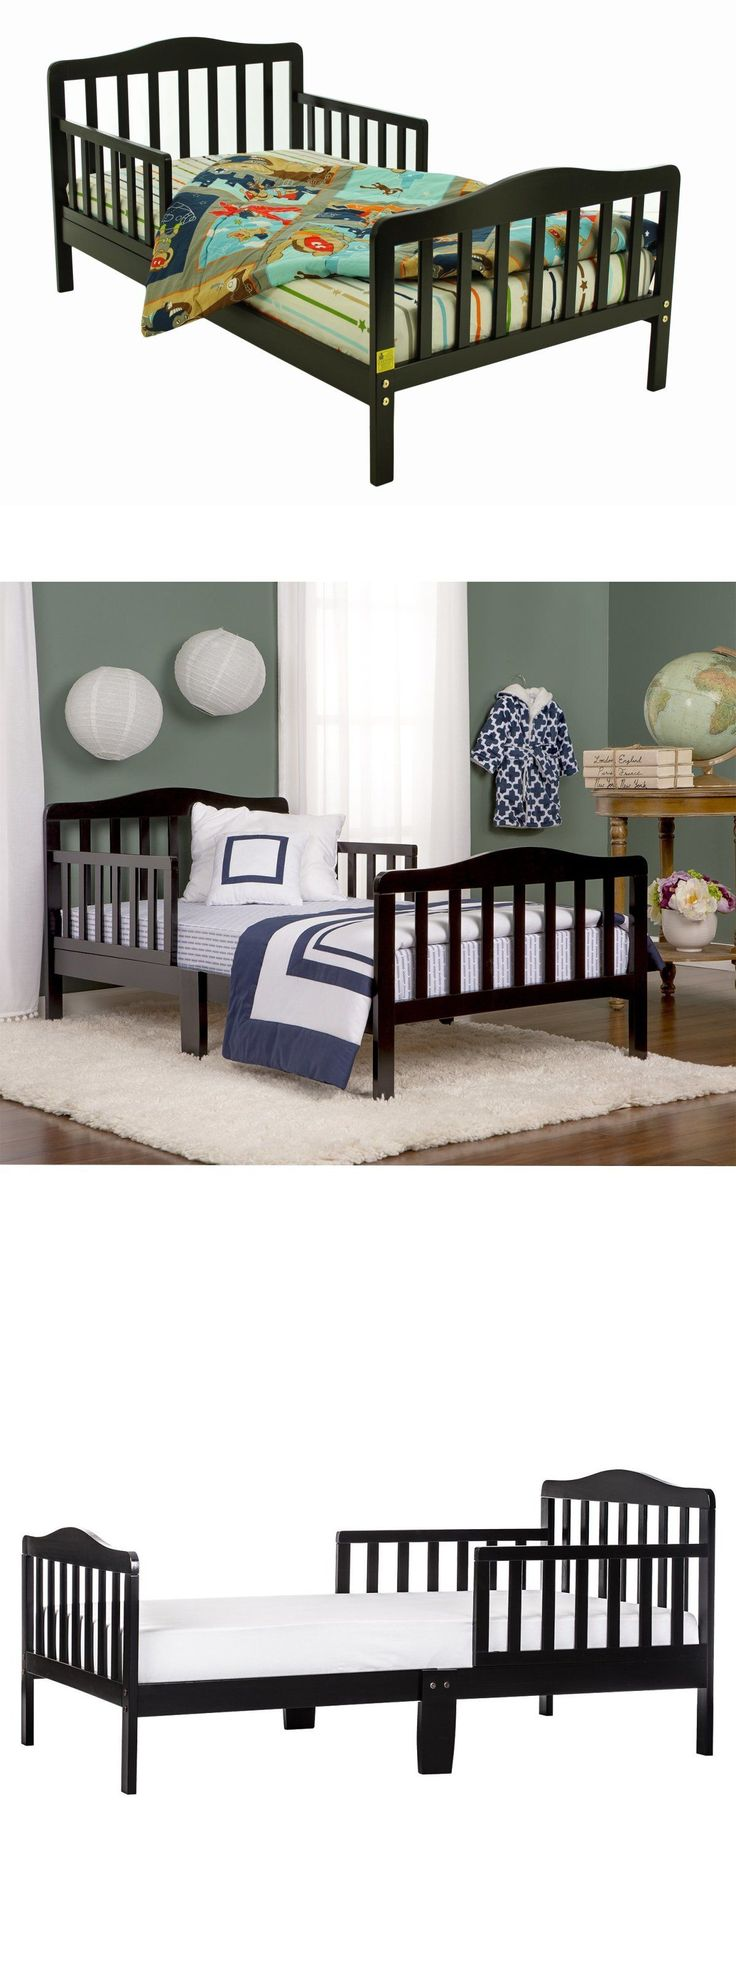 Baby bed fall prevention - 25 Best Ideas About Bed Rails For Toddlers On Pinterest Toddler Bed Rails Bed Rails And Bed Frame Rails